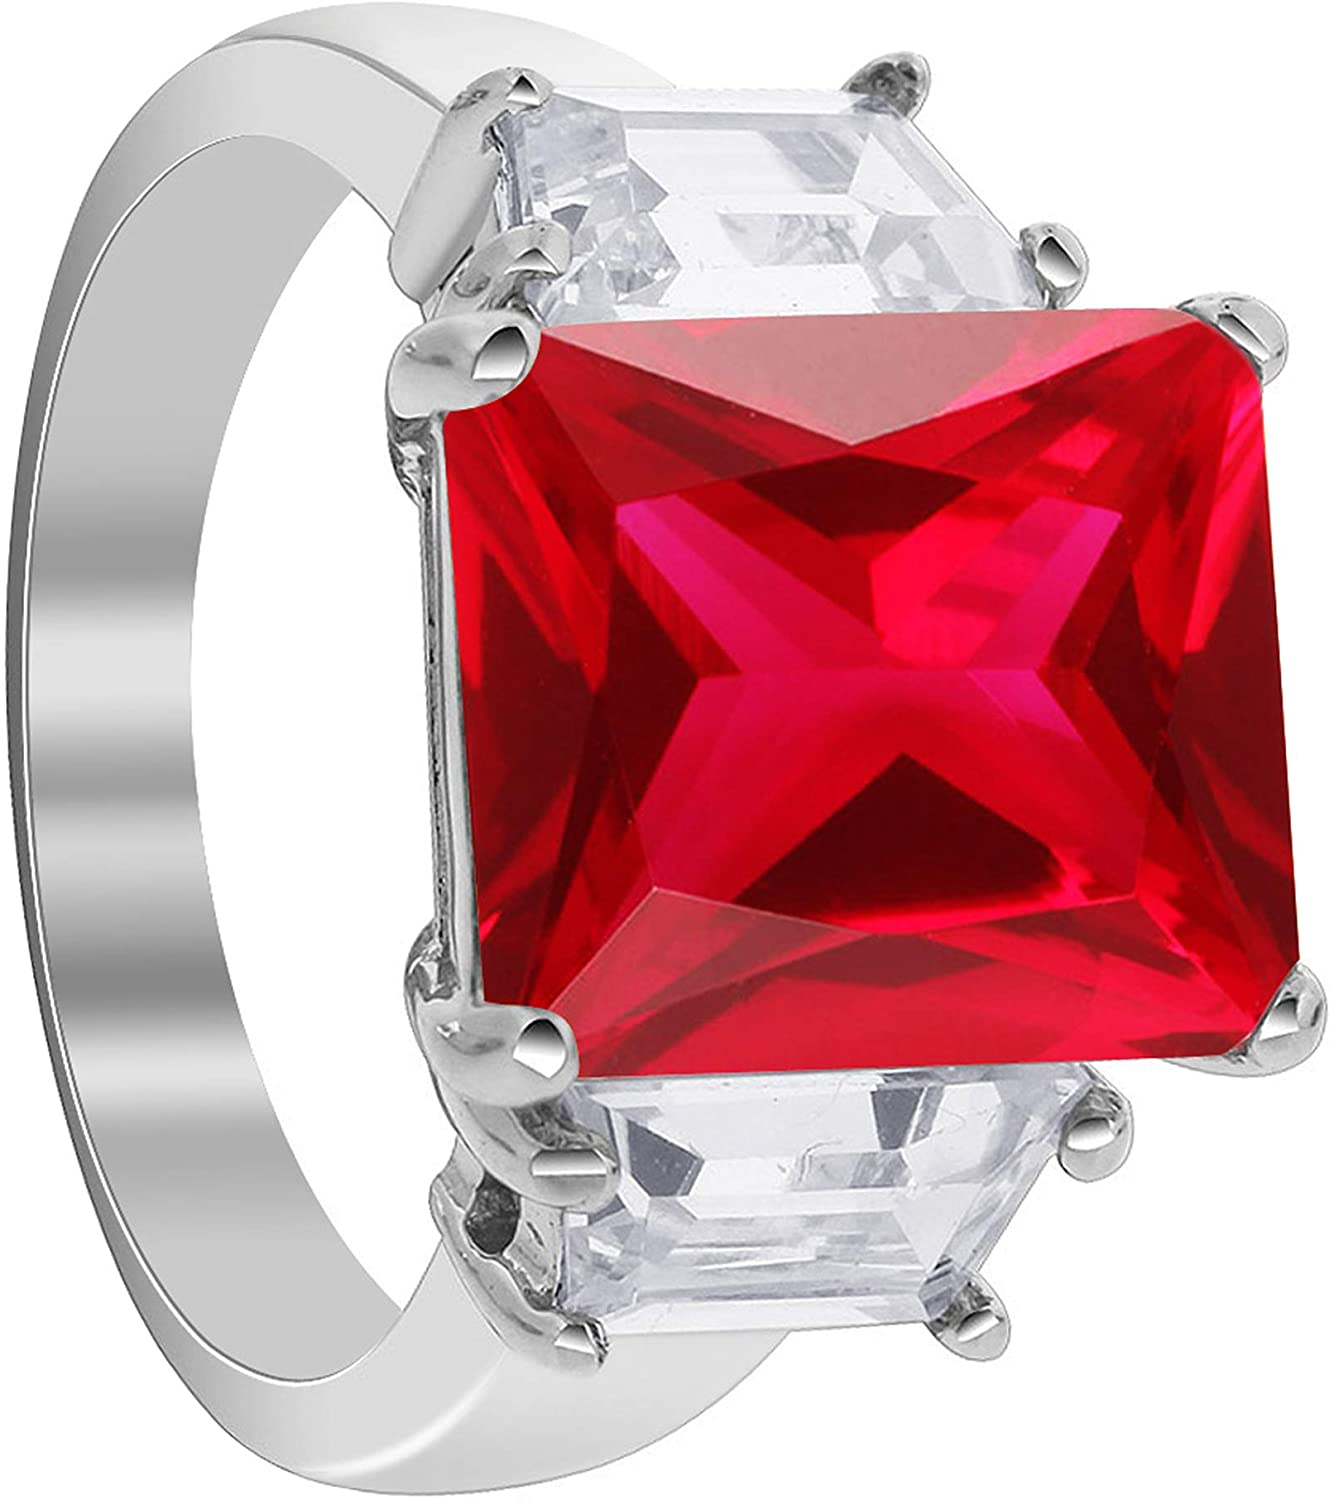 Gem Avenue Emerald Cut CZ Ruby Cubic Zirconia Three Stone Engagement Sterling Silver Ring